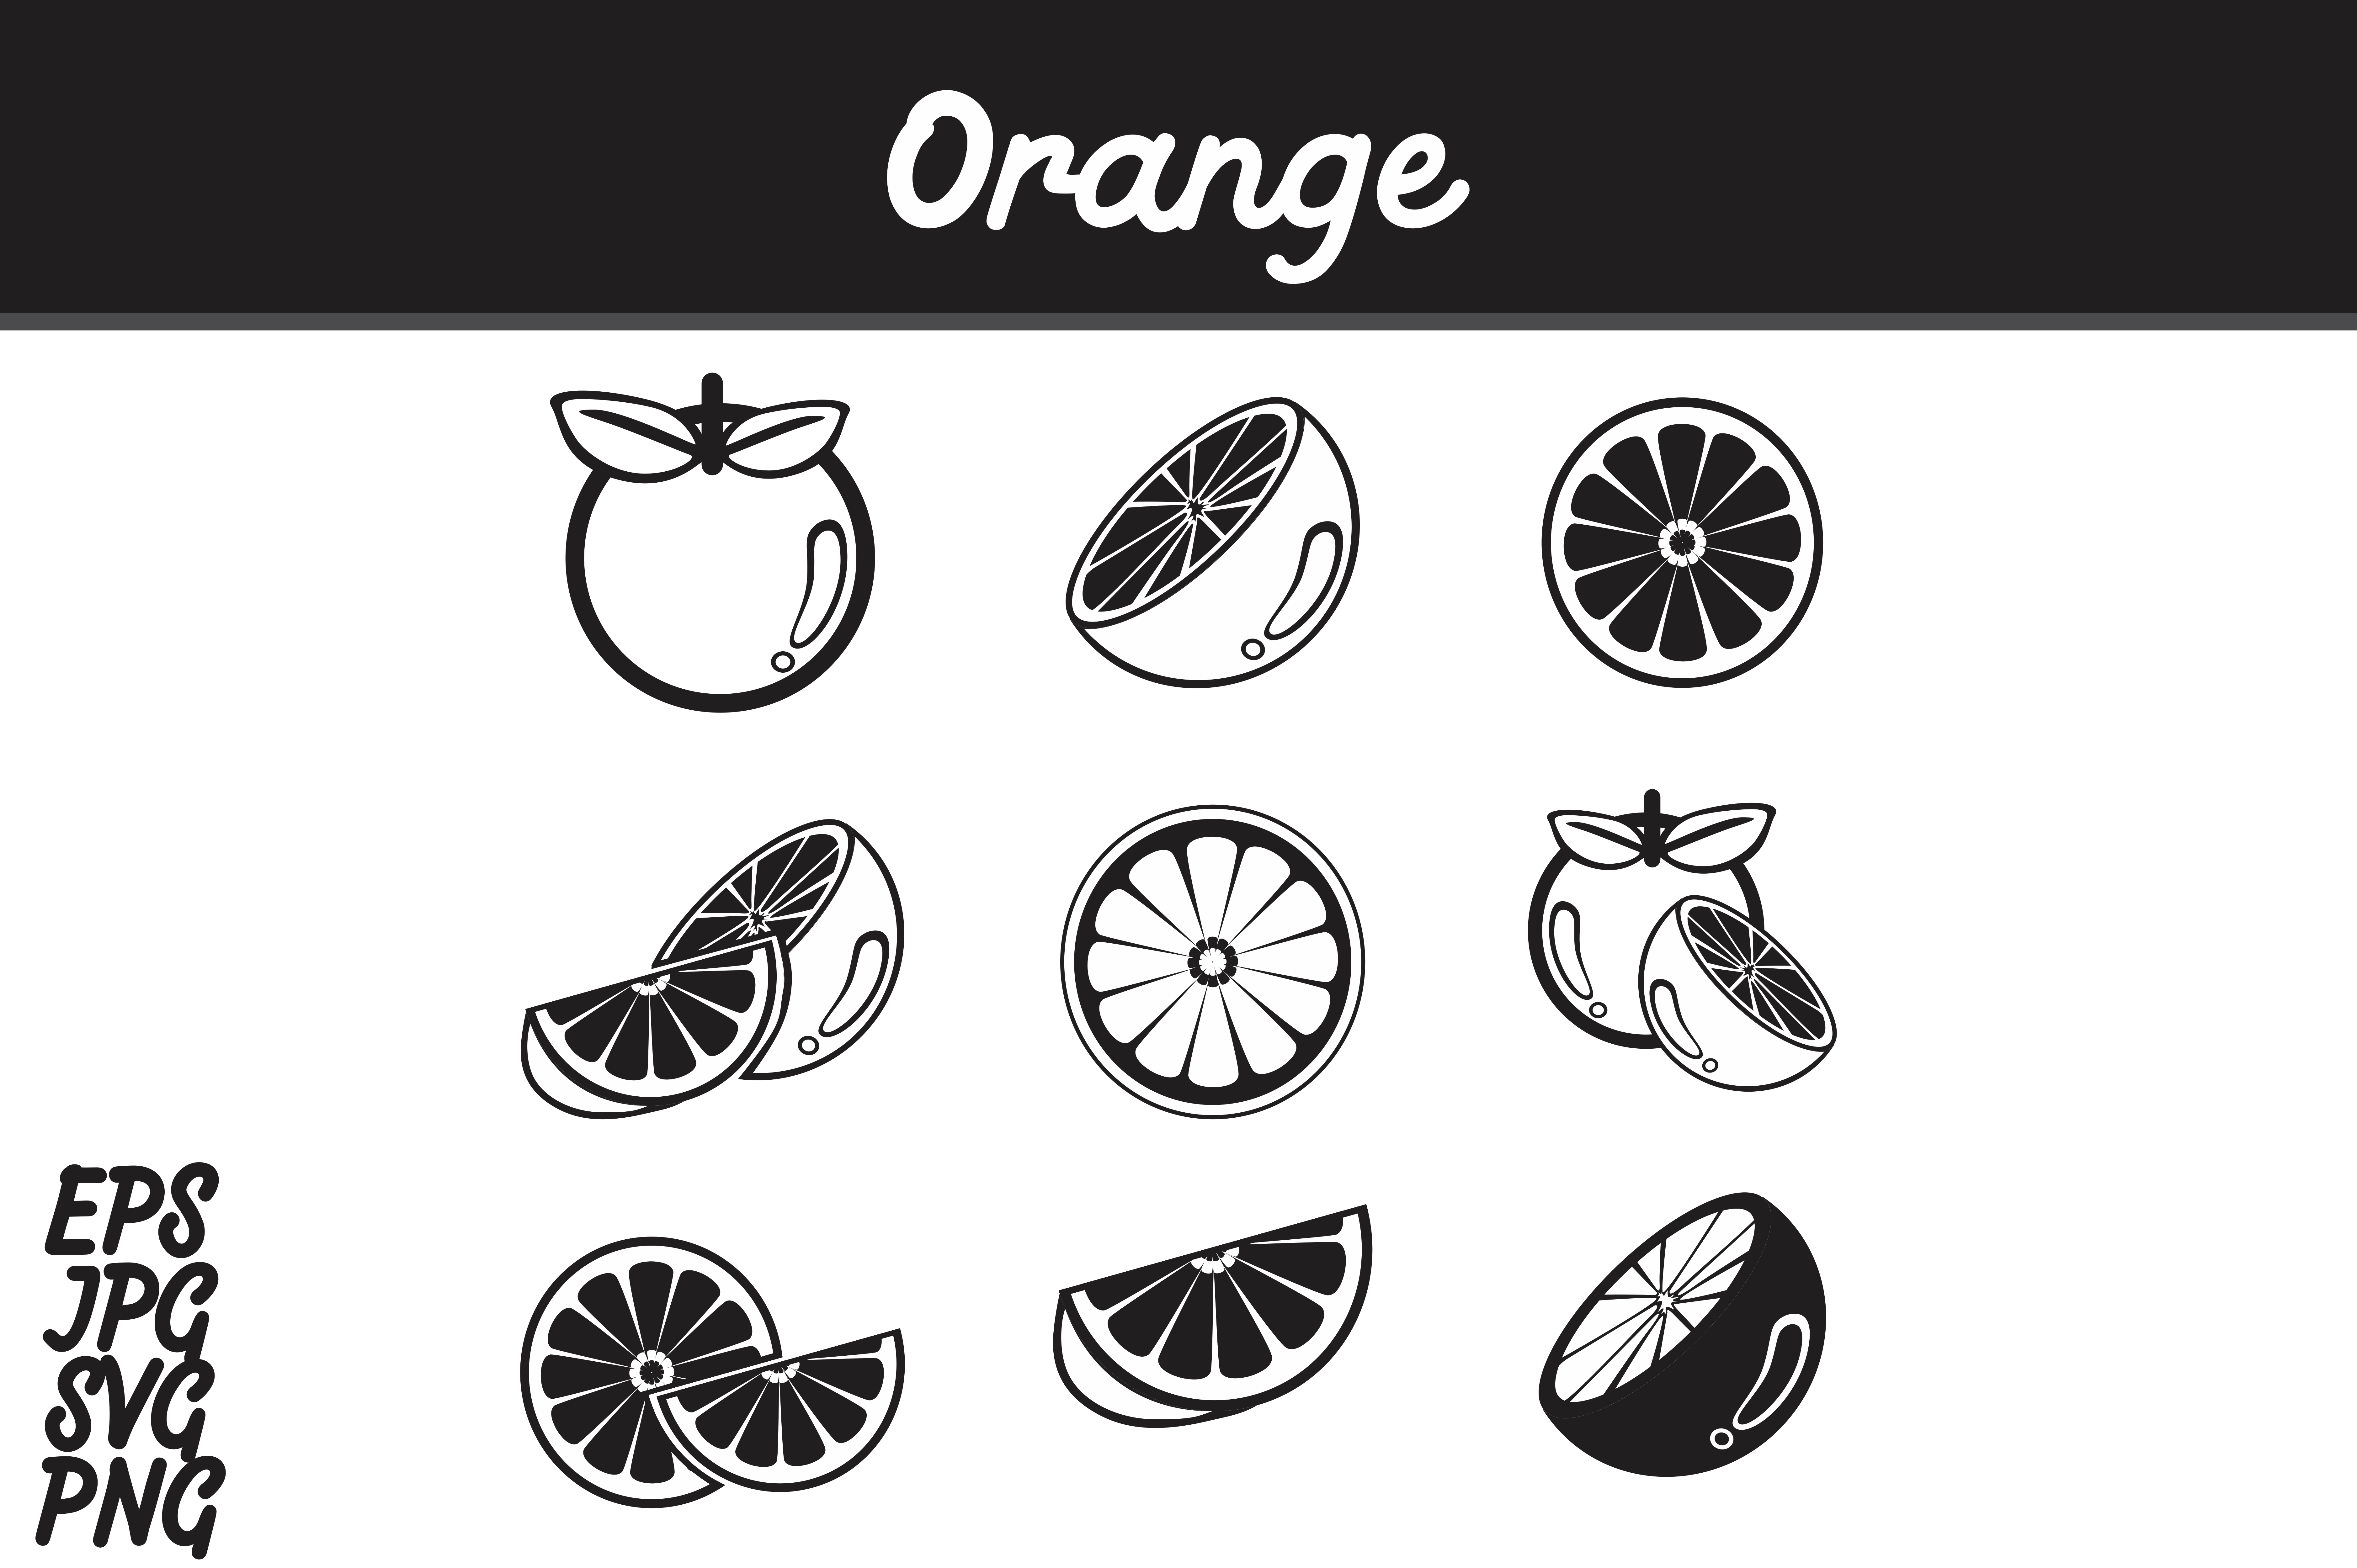 Download Free Orange Icon Set Svg Vector Image Bundle Graphic By Arief Sapta for Cricut Explore, Silhouette and other cutting machines.